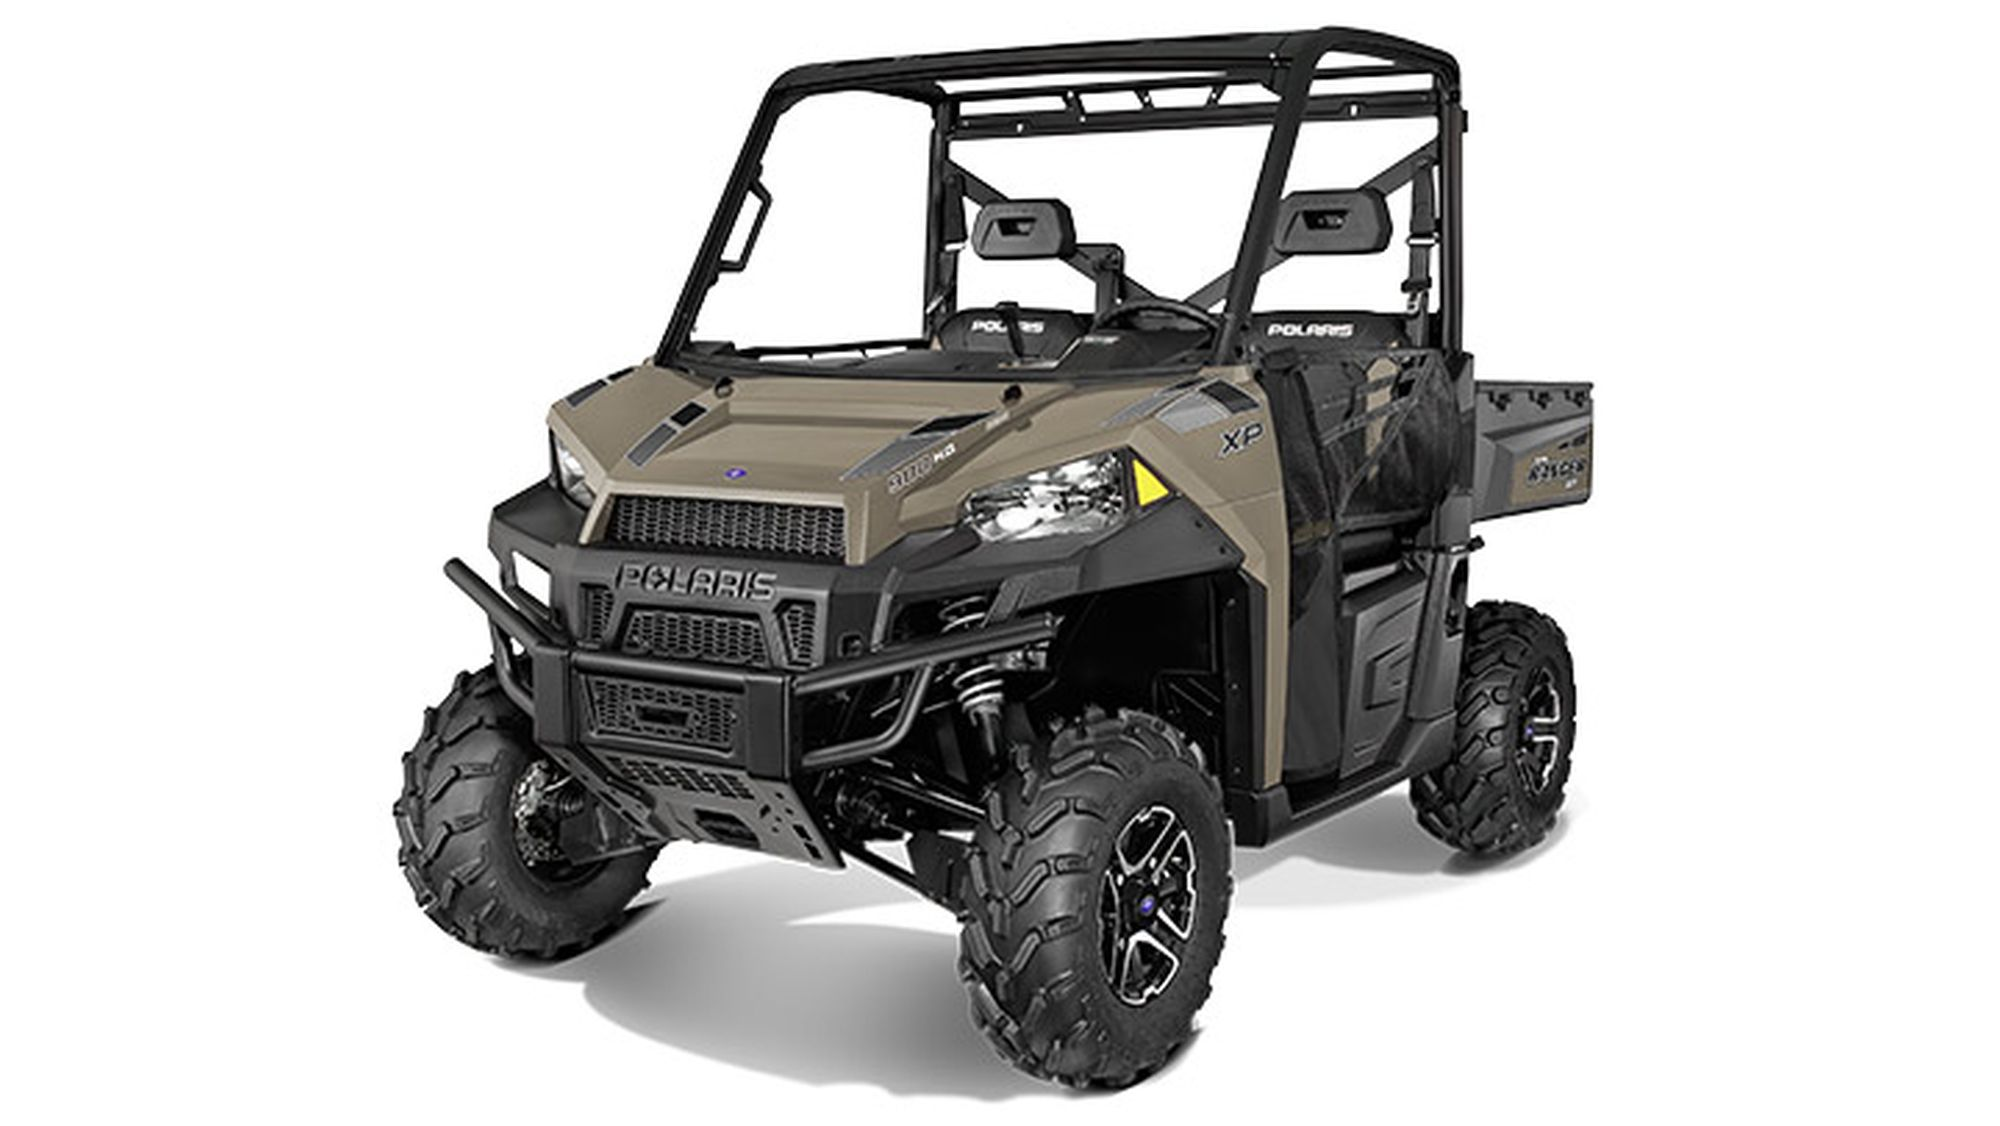 gebrauchte und neue polaris ranger 900 xp motorr der kaufen. Black Bedroom Furniture Sets. Home Design Ideas